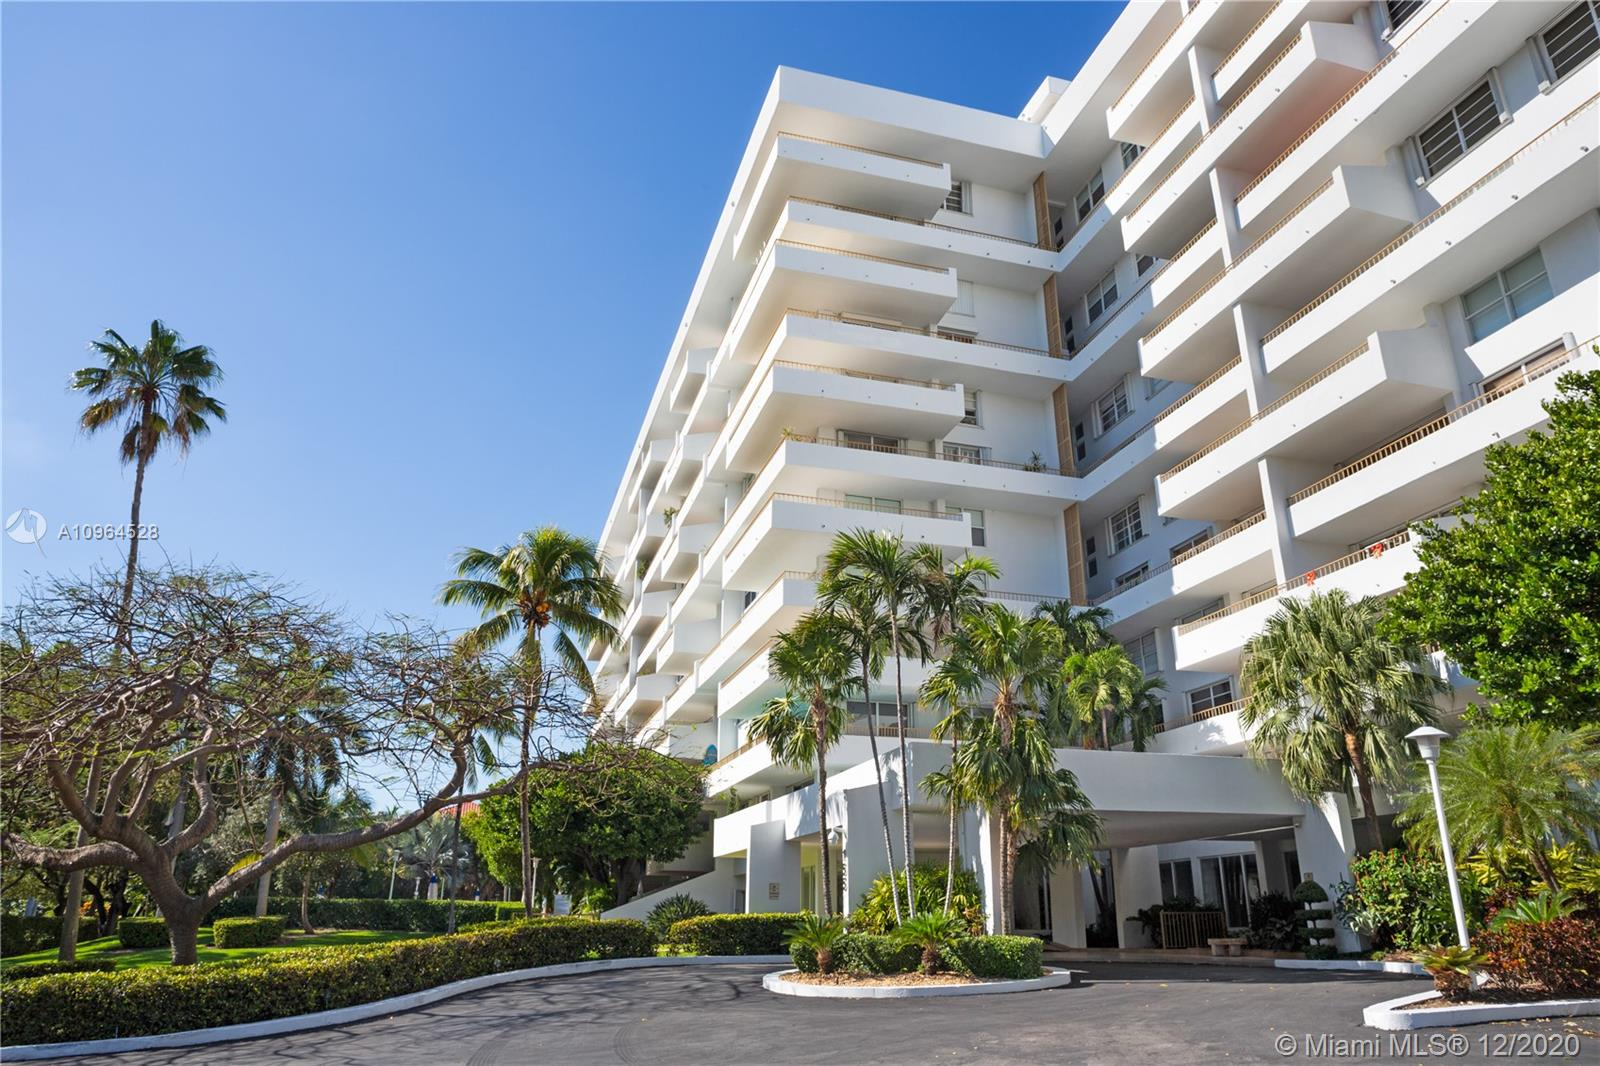 Commodore Club West #210 - 155 Ocean Lane Dr #210, Key Biscayne, FL 33149